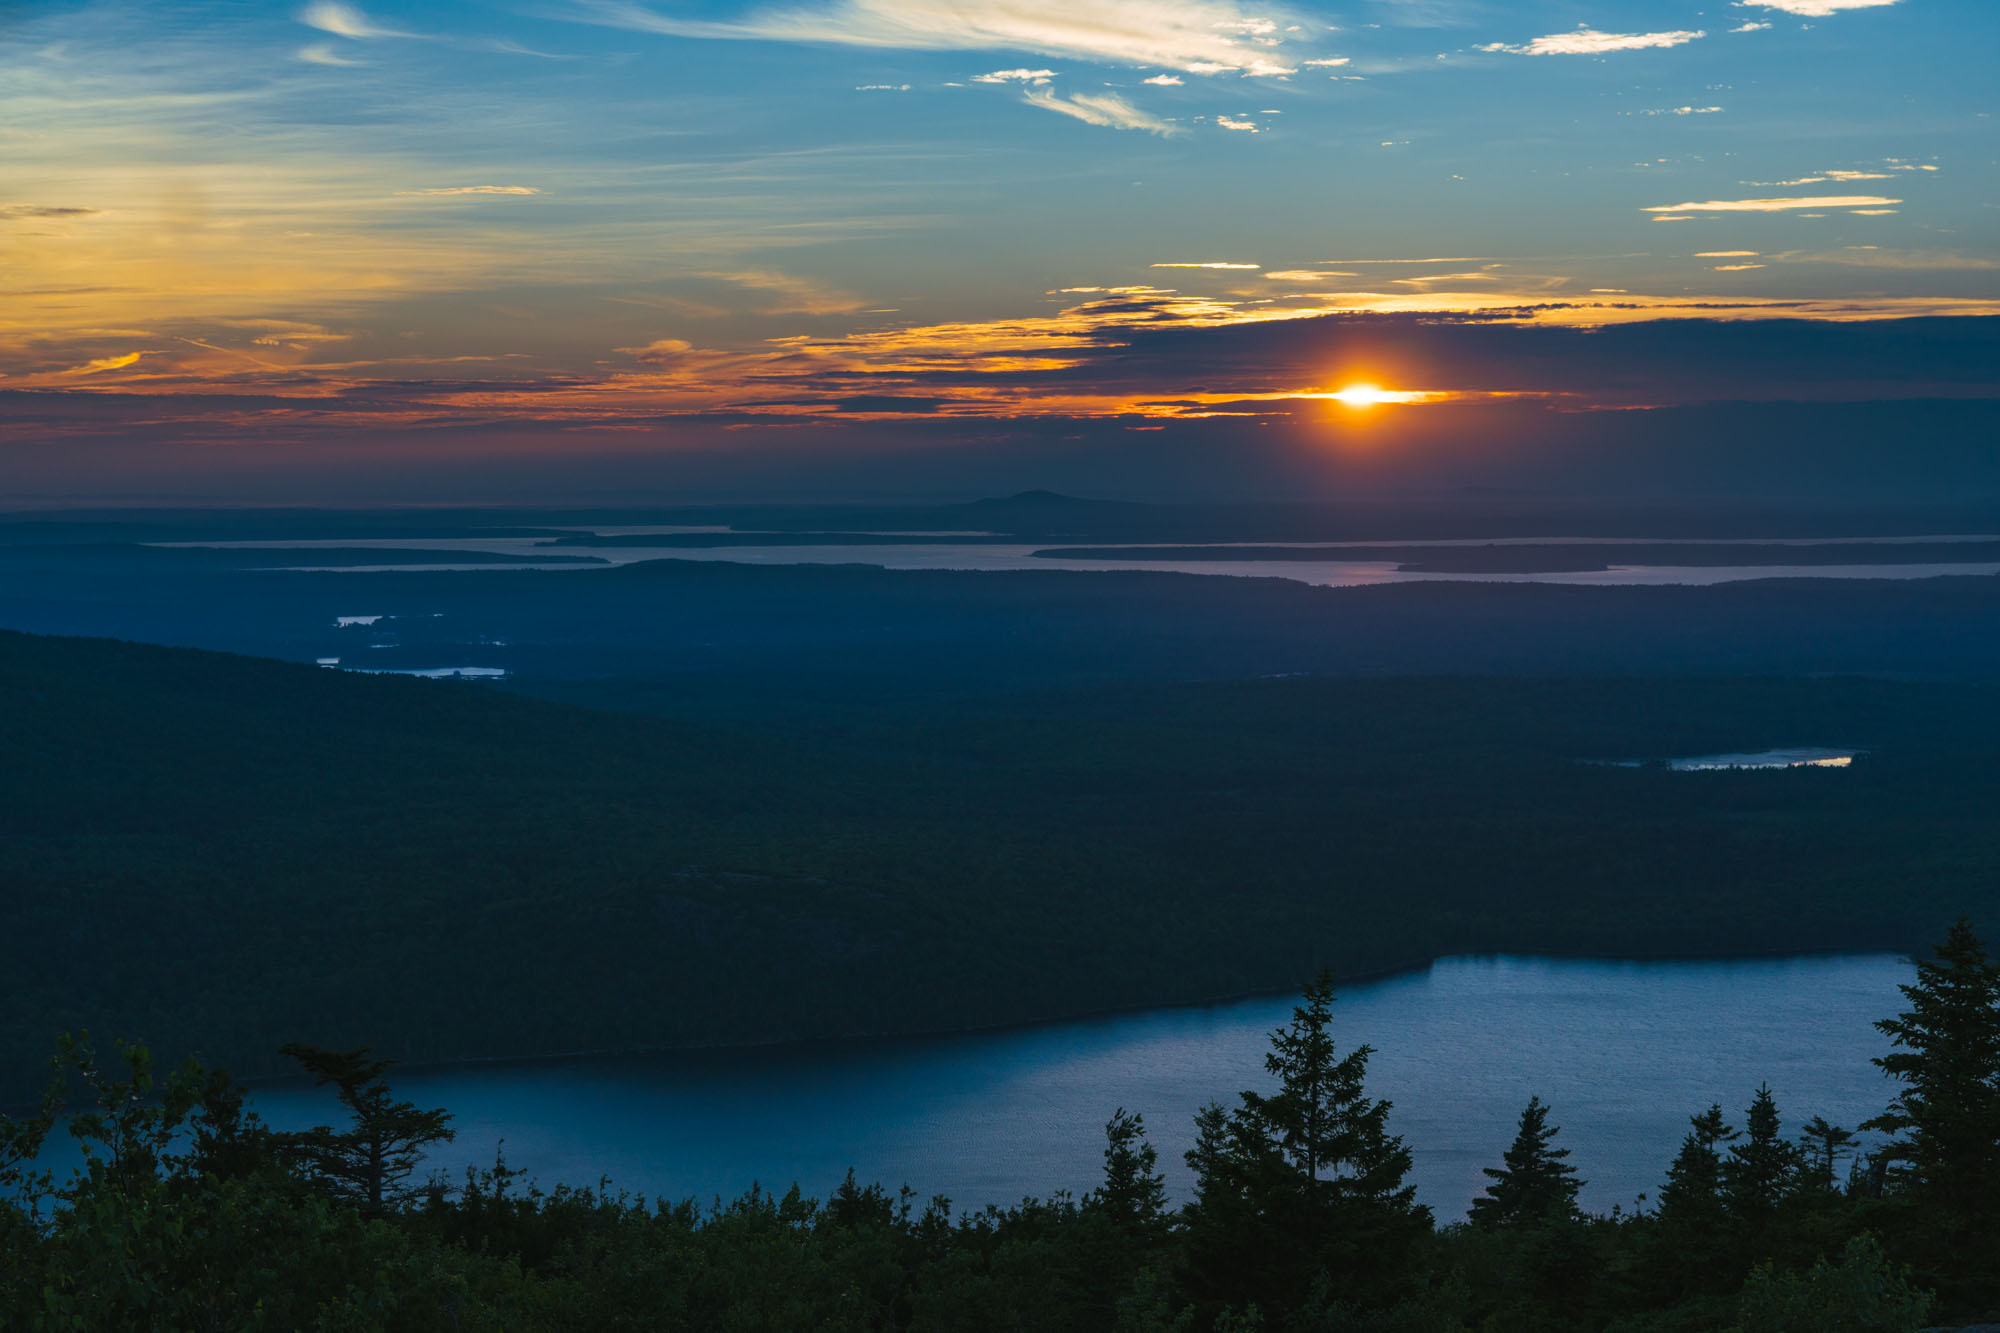 You wanted more sunset, so here is more sunset over Acadia NP